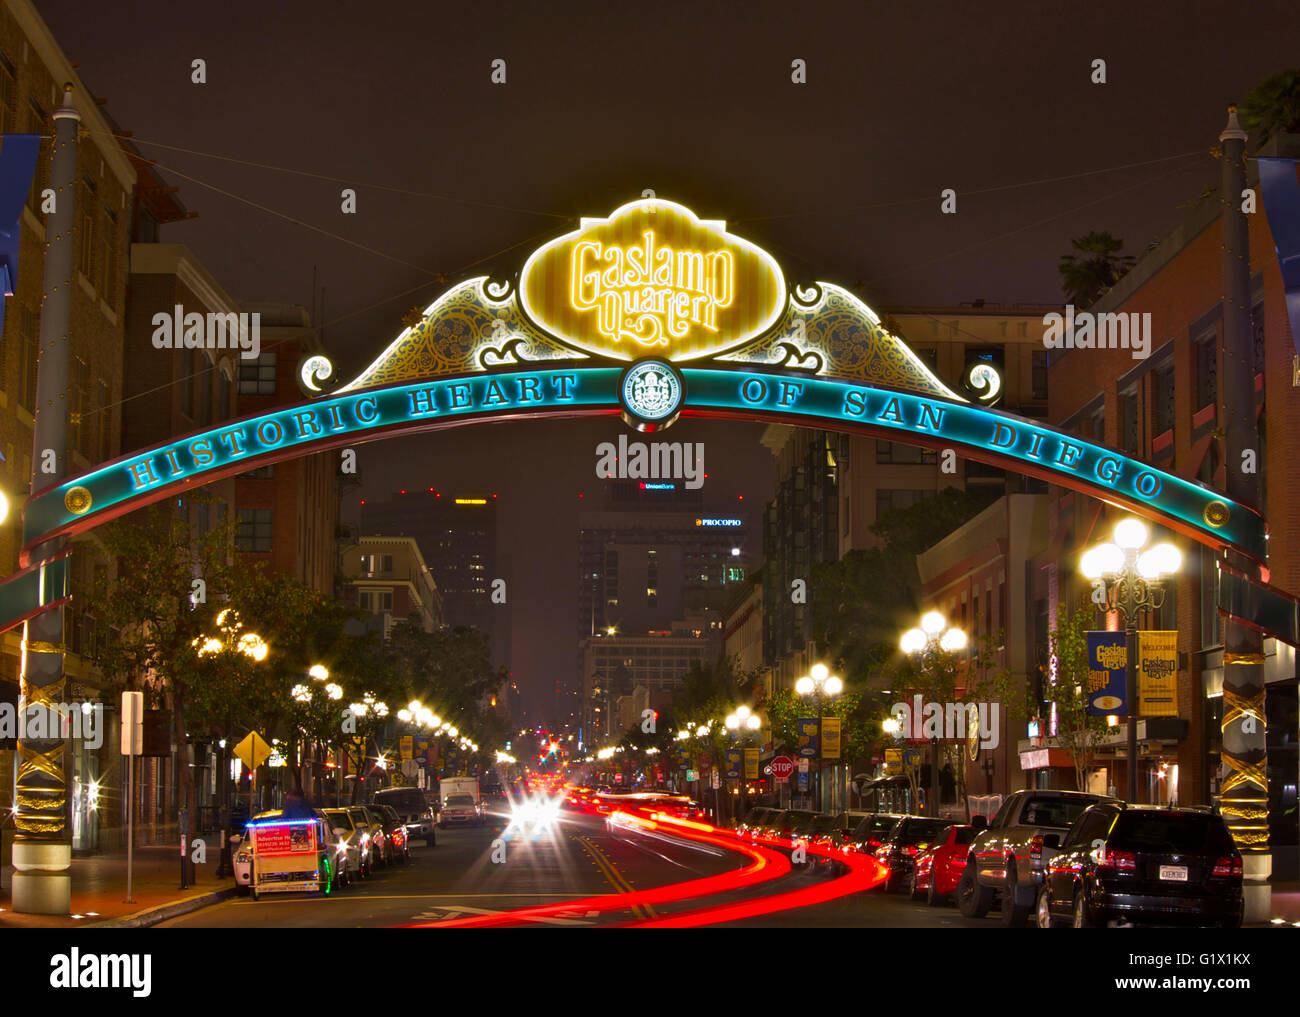 Beautiful Night Photo Of The Gaslamp Quarter In San Diego With Light Trails   Stock  Image Good Ideas